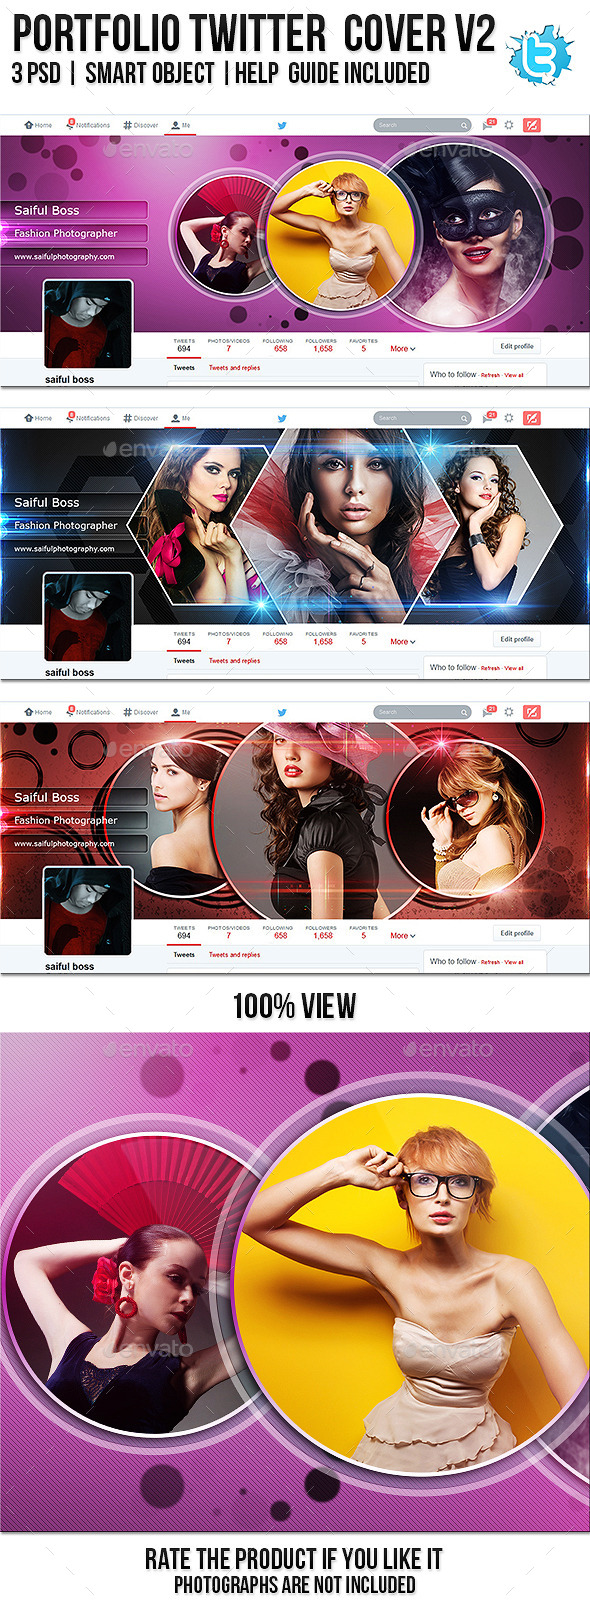 GraphicRiver Portfolio Twitter Profile Cover V2 8858177